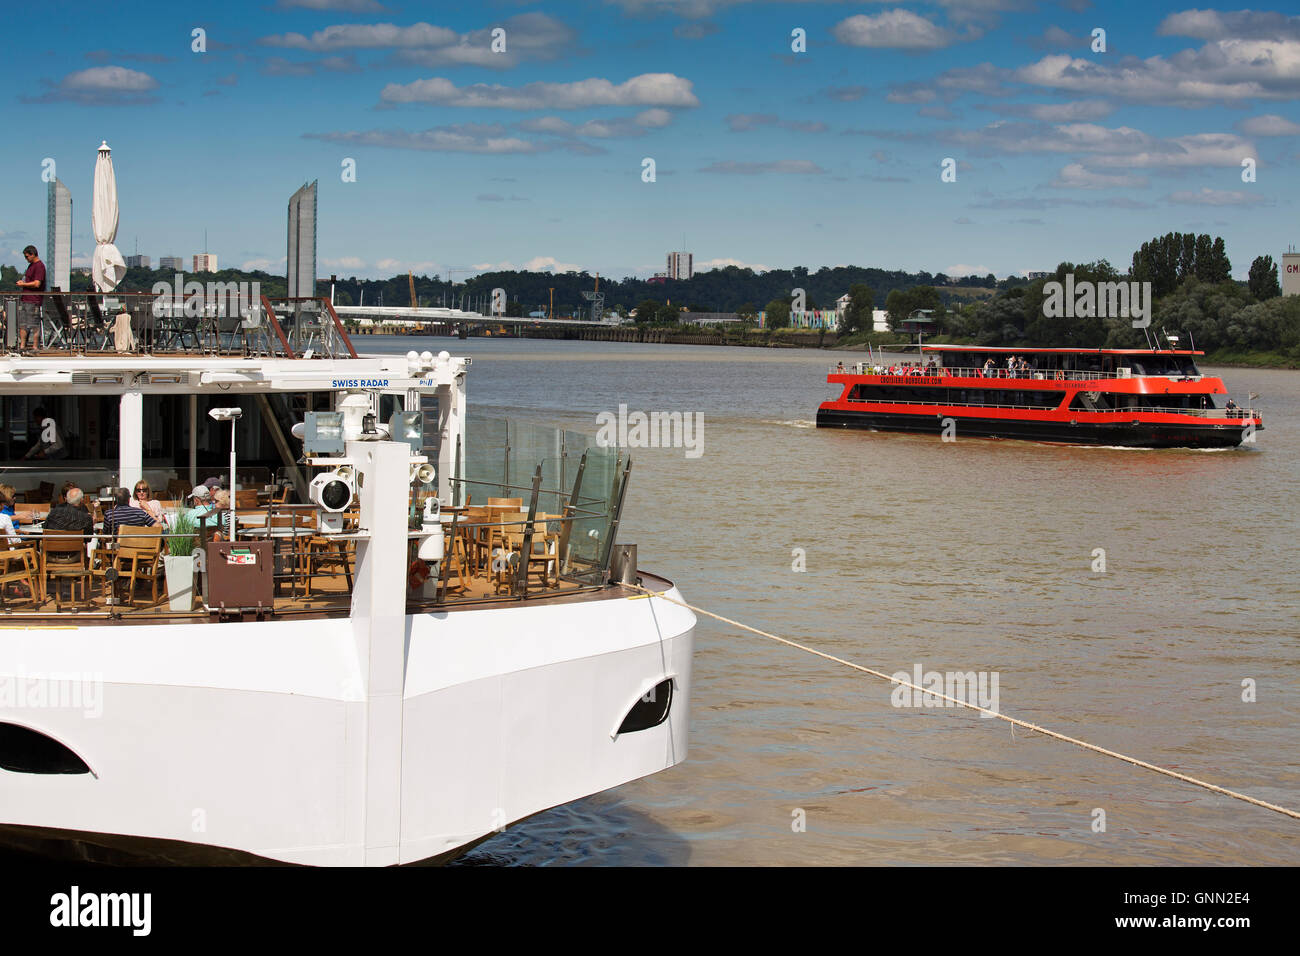 Cruise ships in the Garonne river harbour. Bordeaux, Gironde. Aquitaine France Europe - Stock Image